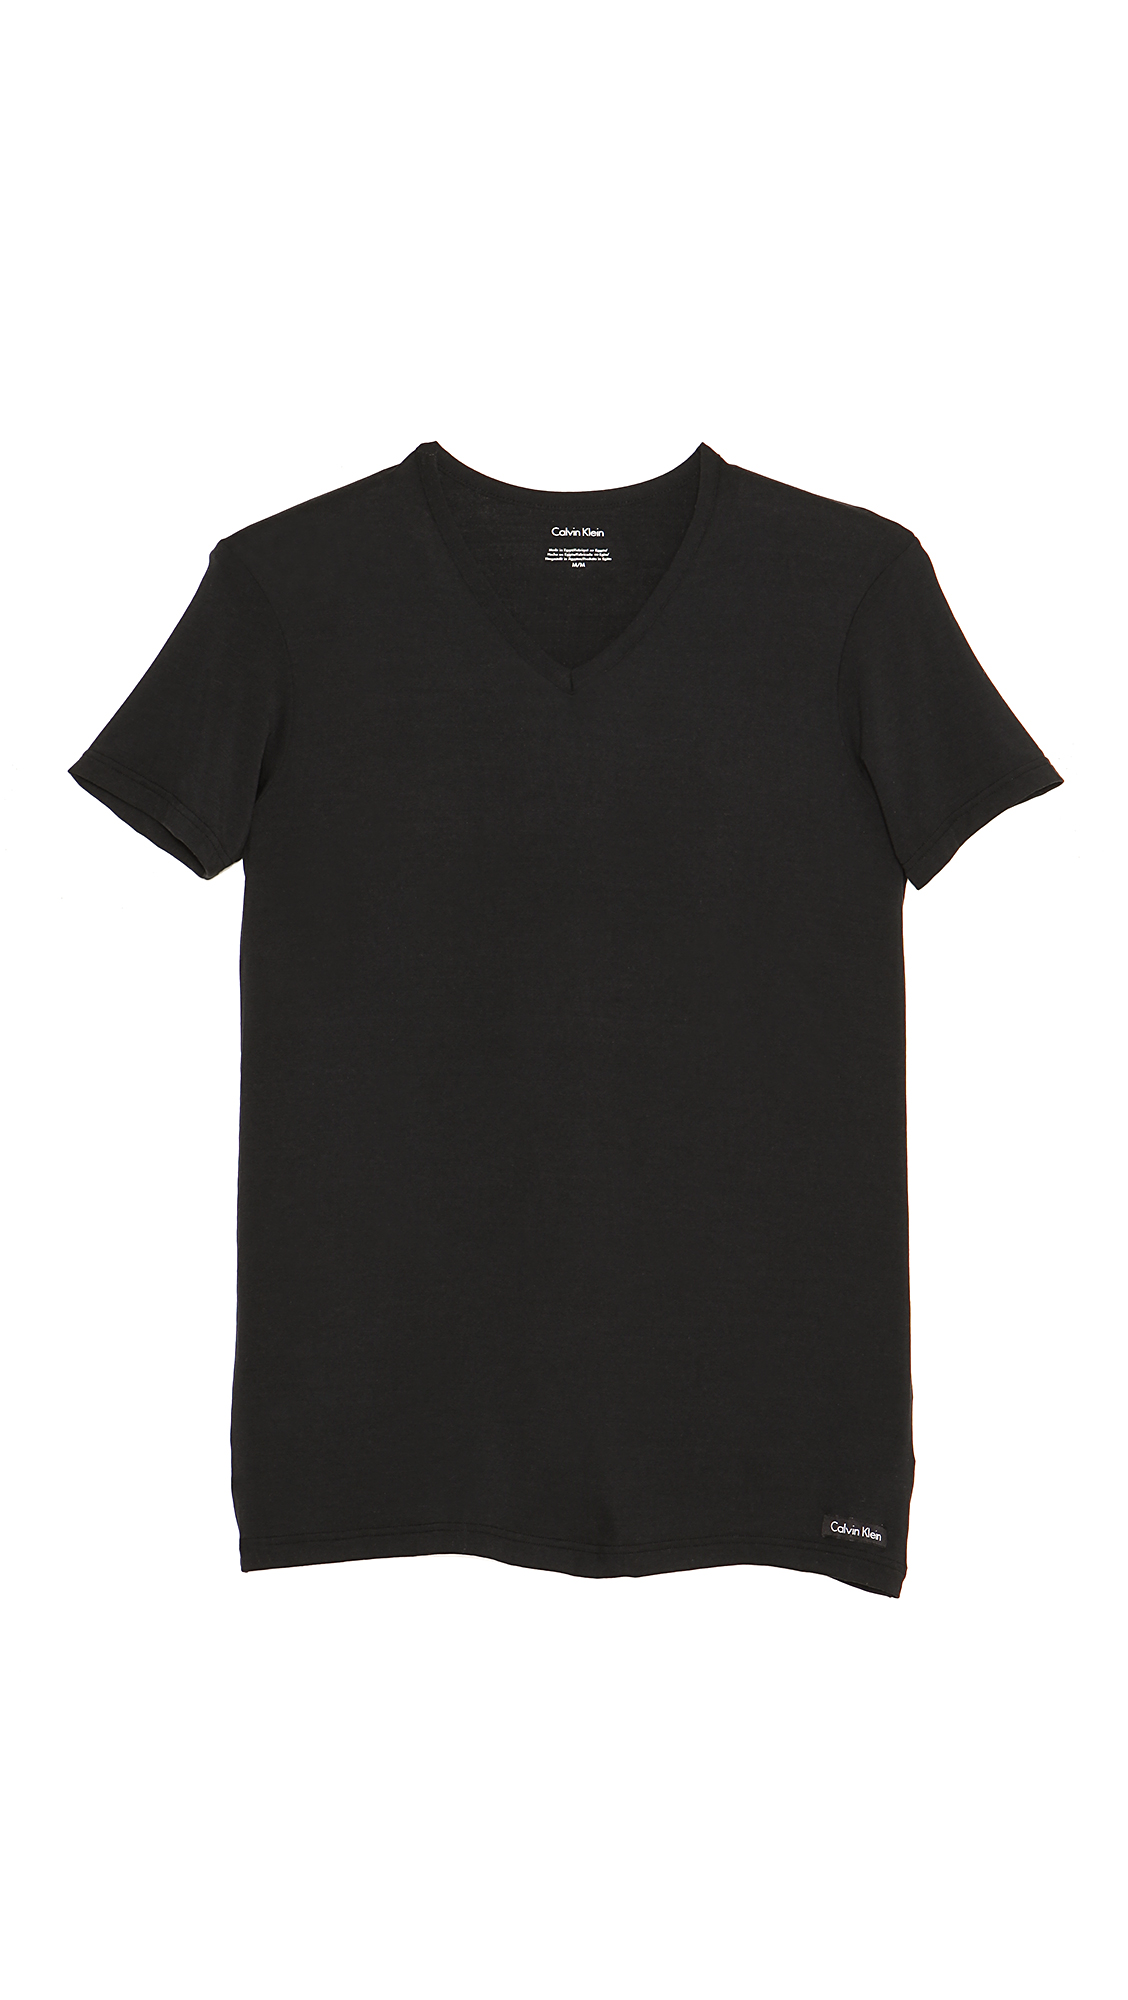 Calvin klein body modal v neck t shirt in black for men lyst for Modal t shirts mens